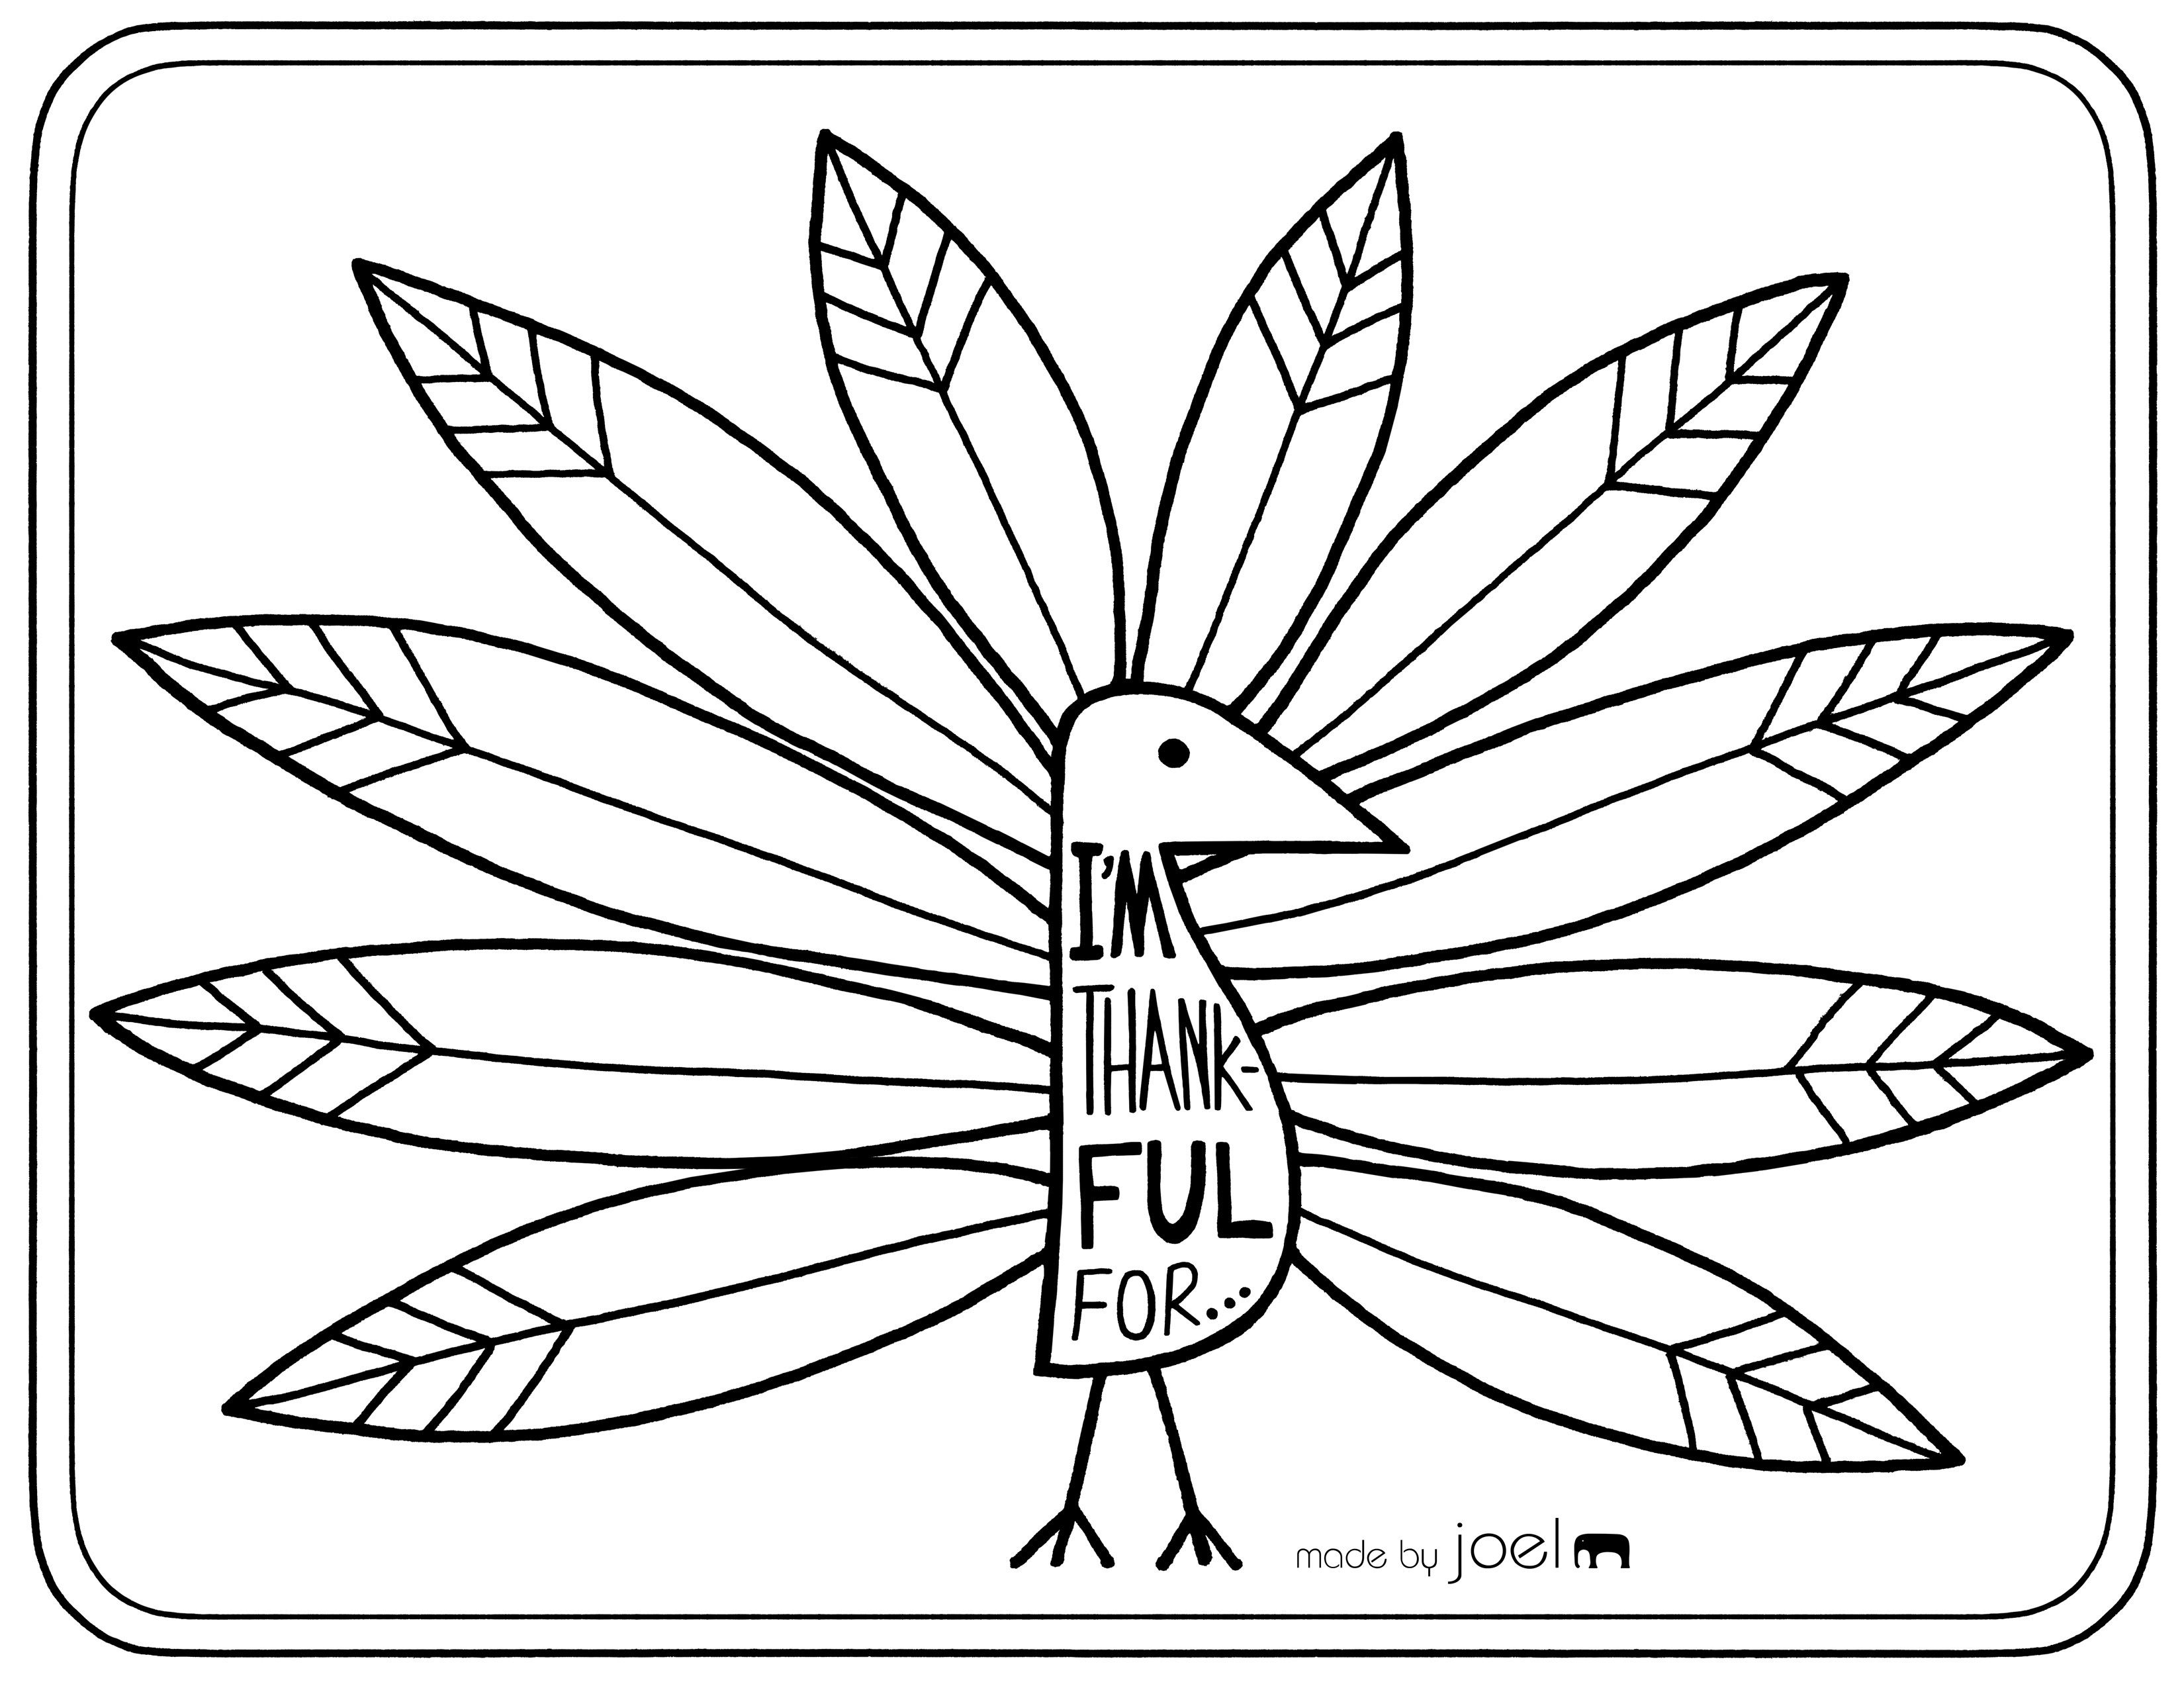 Free Printable Placemat For Giving Thanks | Fall Crafts & Ideas - Free Printable Thanksgiving Coloring Placemats